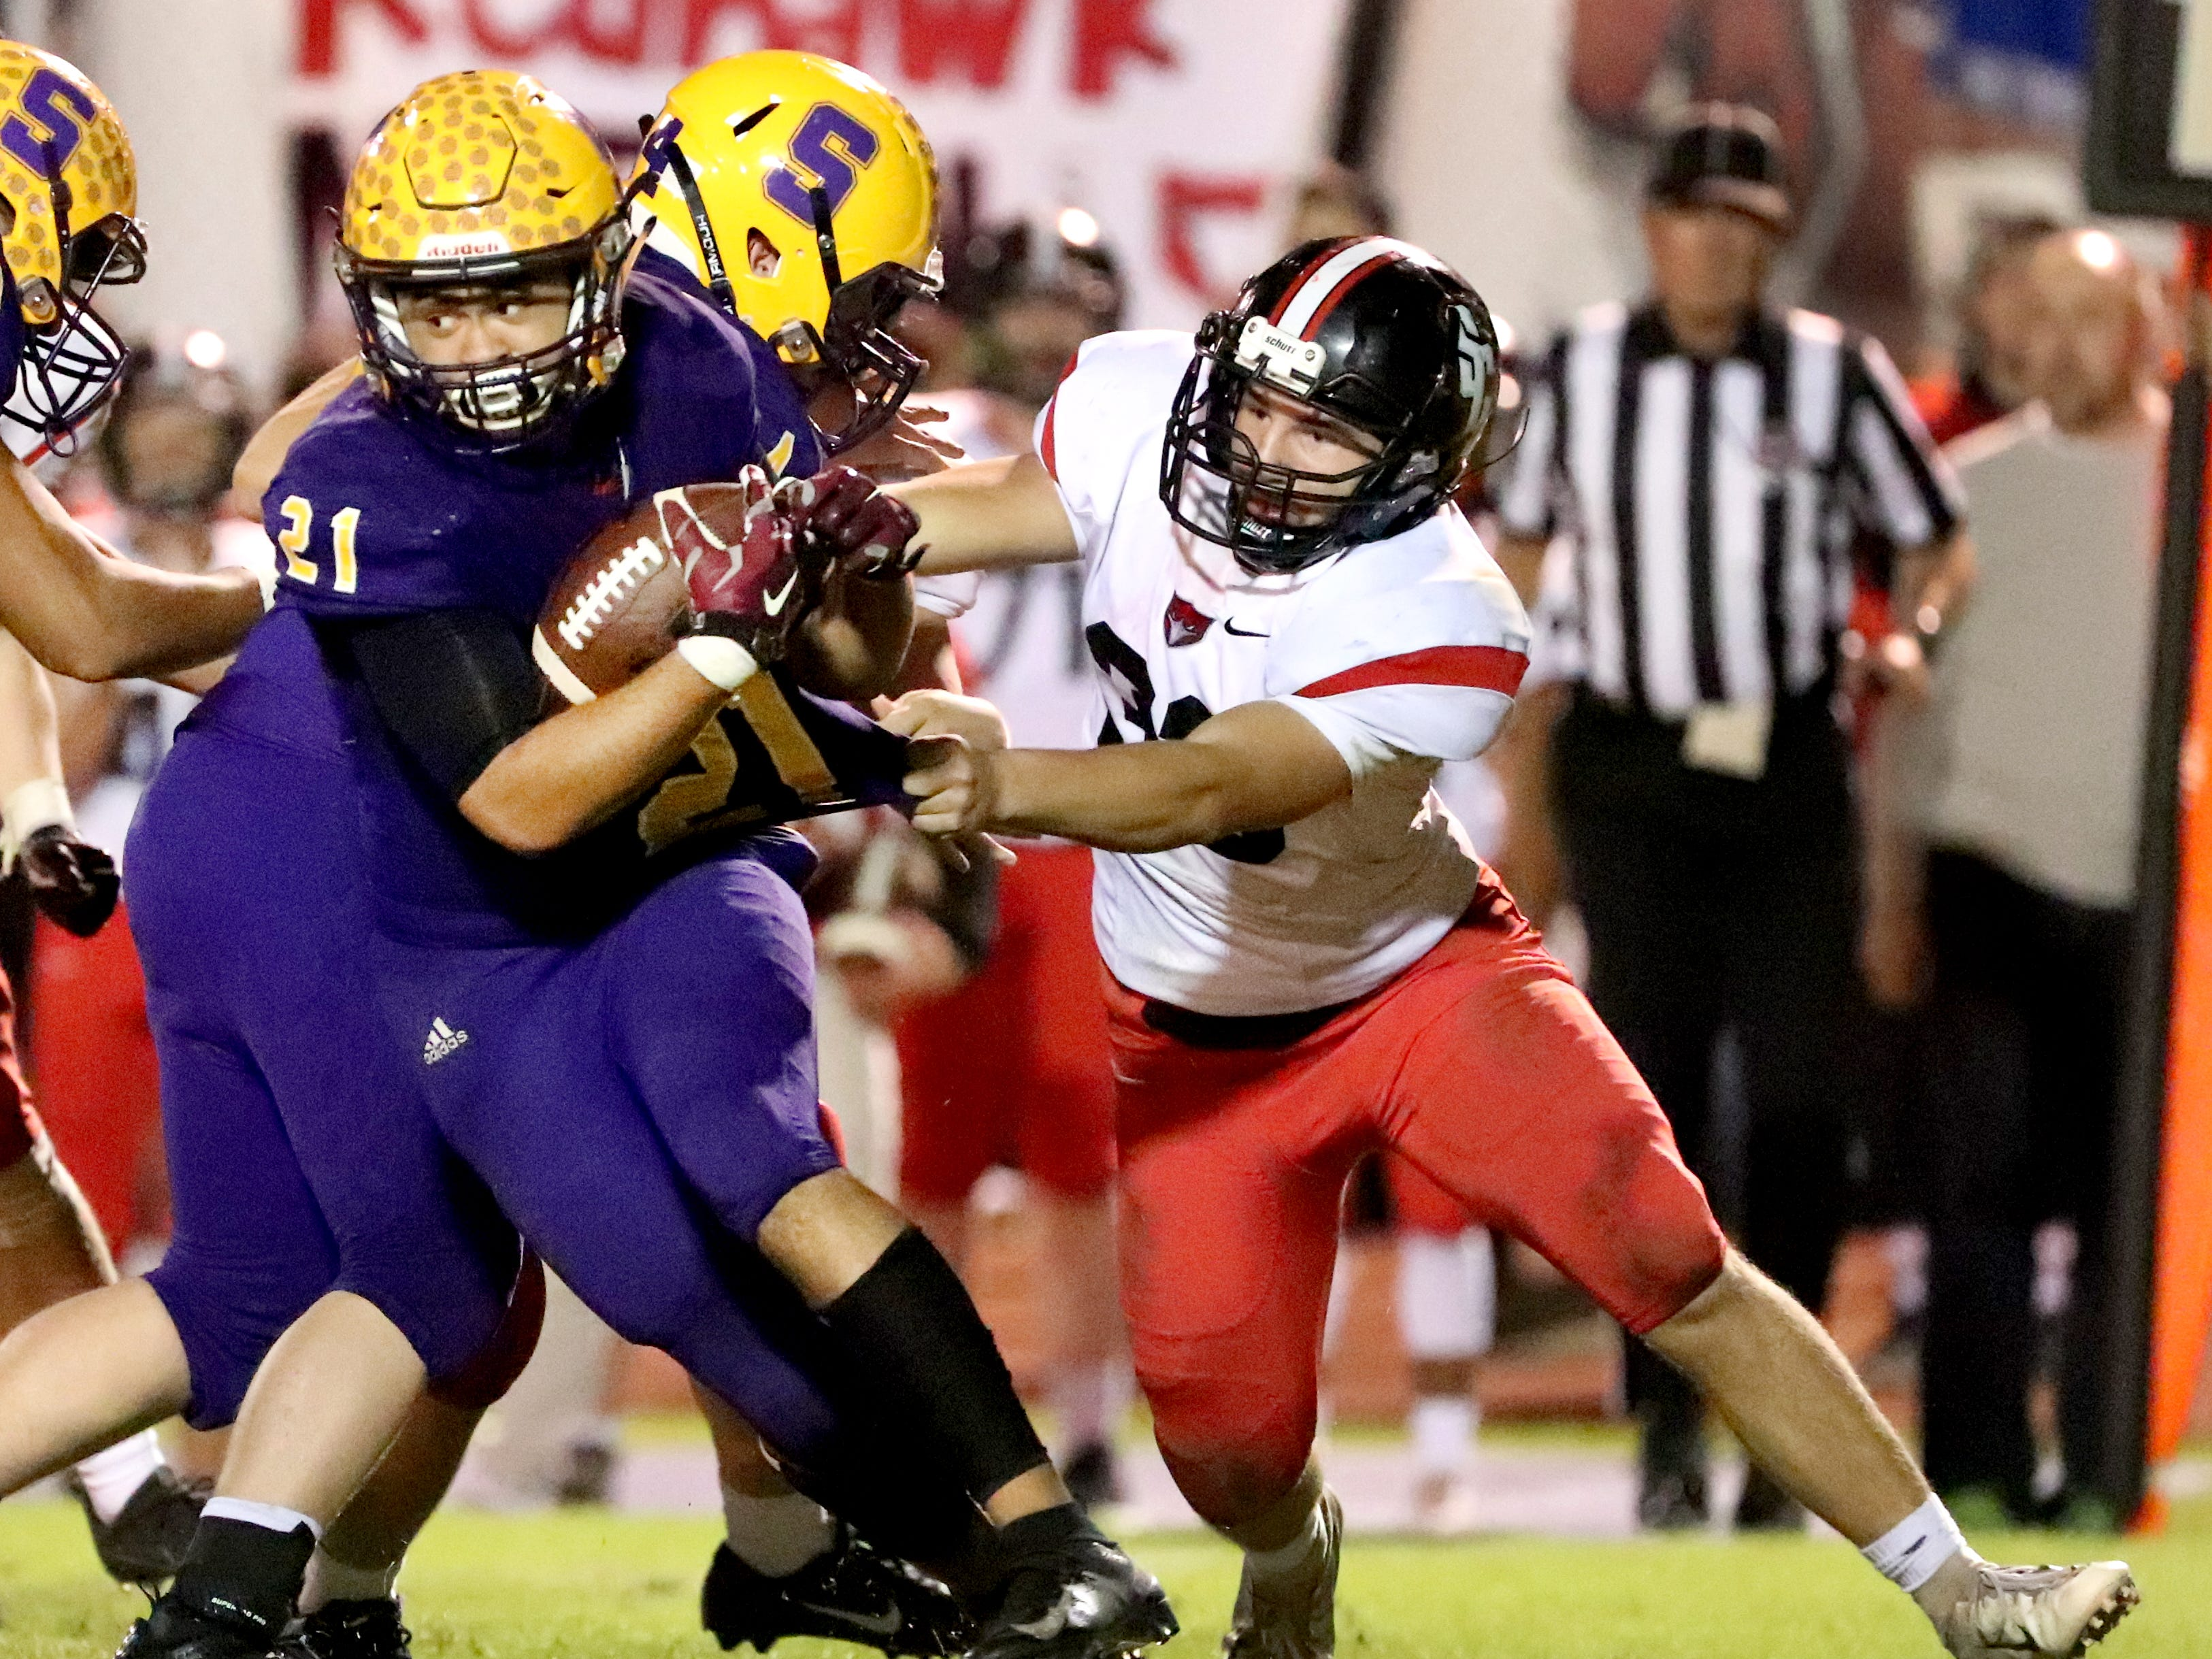 Smyrna's Blake Watkins (21) runs the football as Stewarts Creek's Bryce Haven (33) tried to make a stop at Smyrna High School on Friday, Oct. 12, 2018.